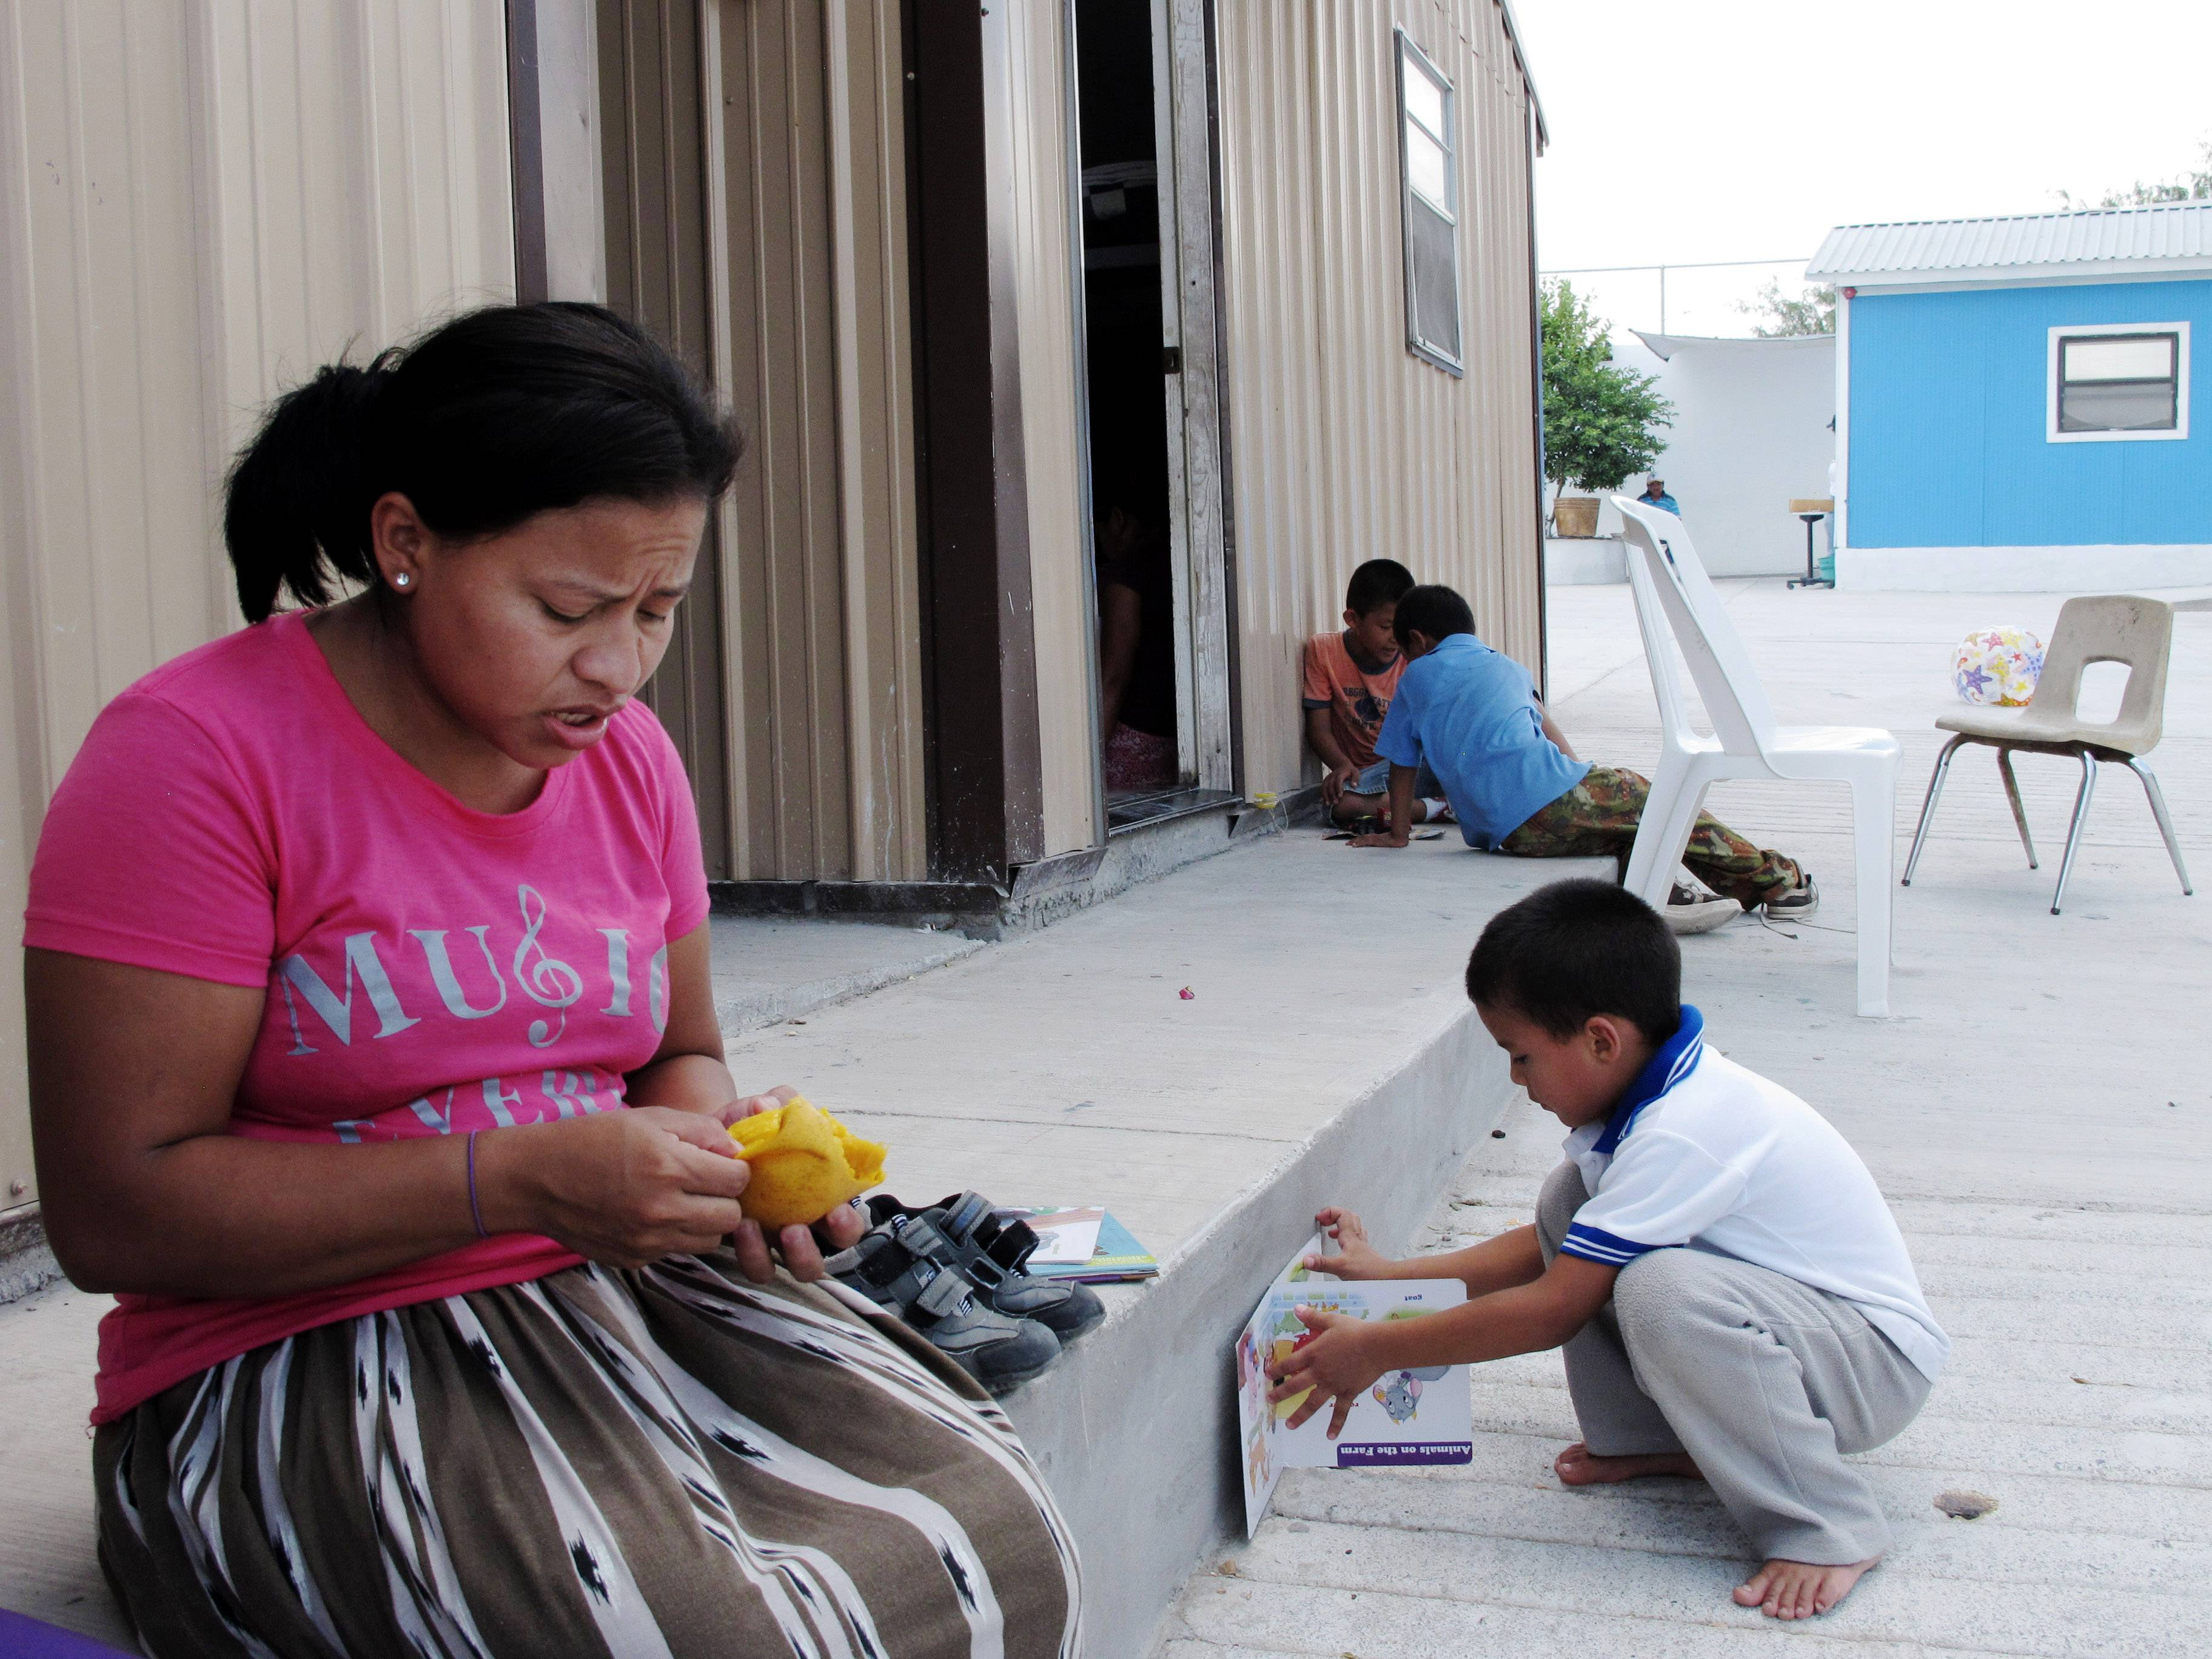 This Aug. 4, 2014 photo shows Eneyda Alvarez of Honduras peeling a mango while her son Antony plays at the Senda de Vida migrant shelter in Reynosa, Mexico. Alvarez hopes to join the thousands of families _ mothers or fathers with young children _ who have crossed the Rio Grande into the U.S. United States.